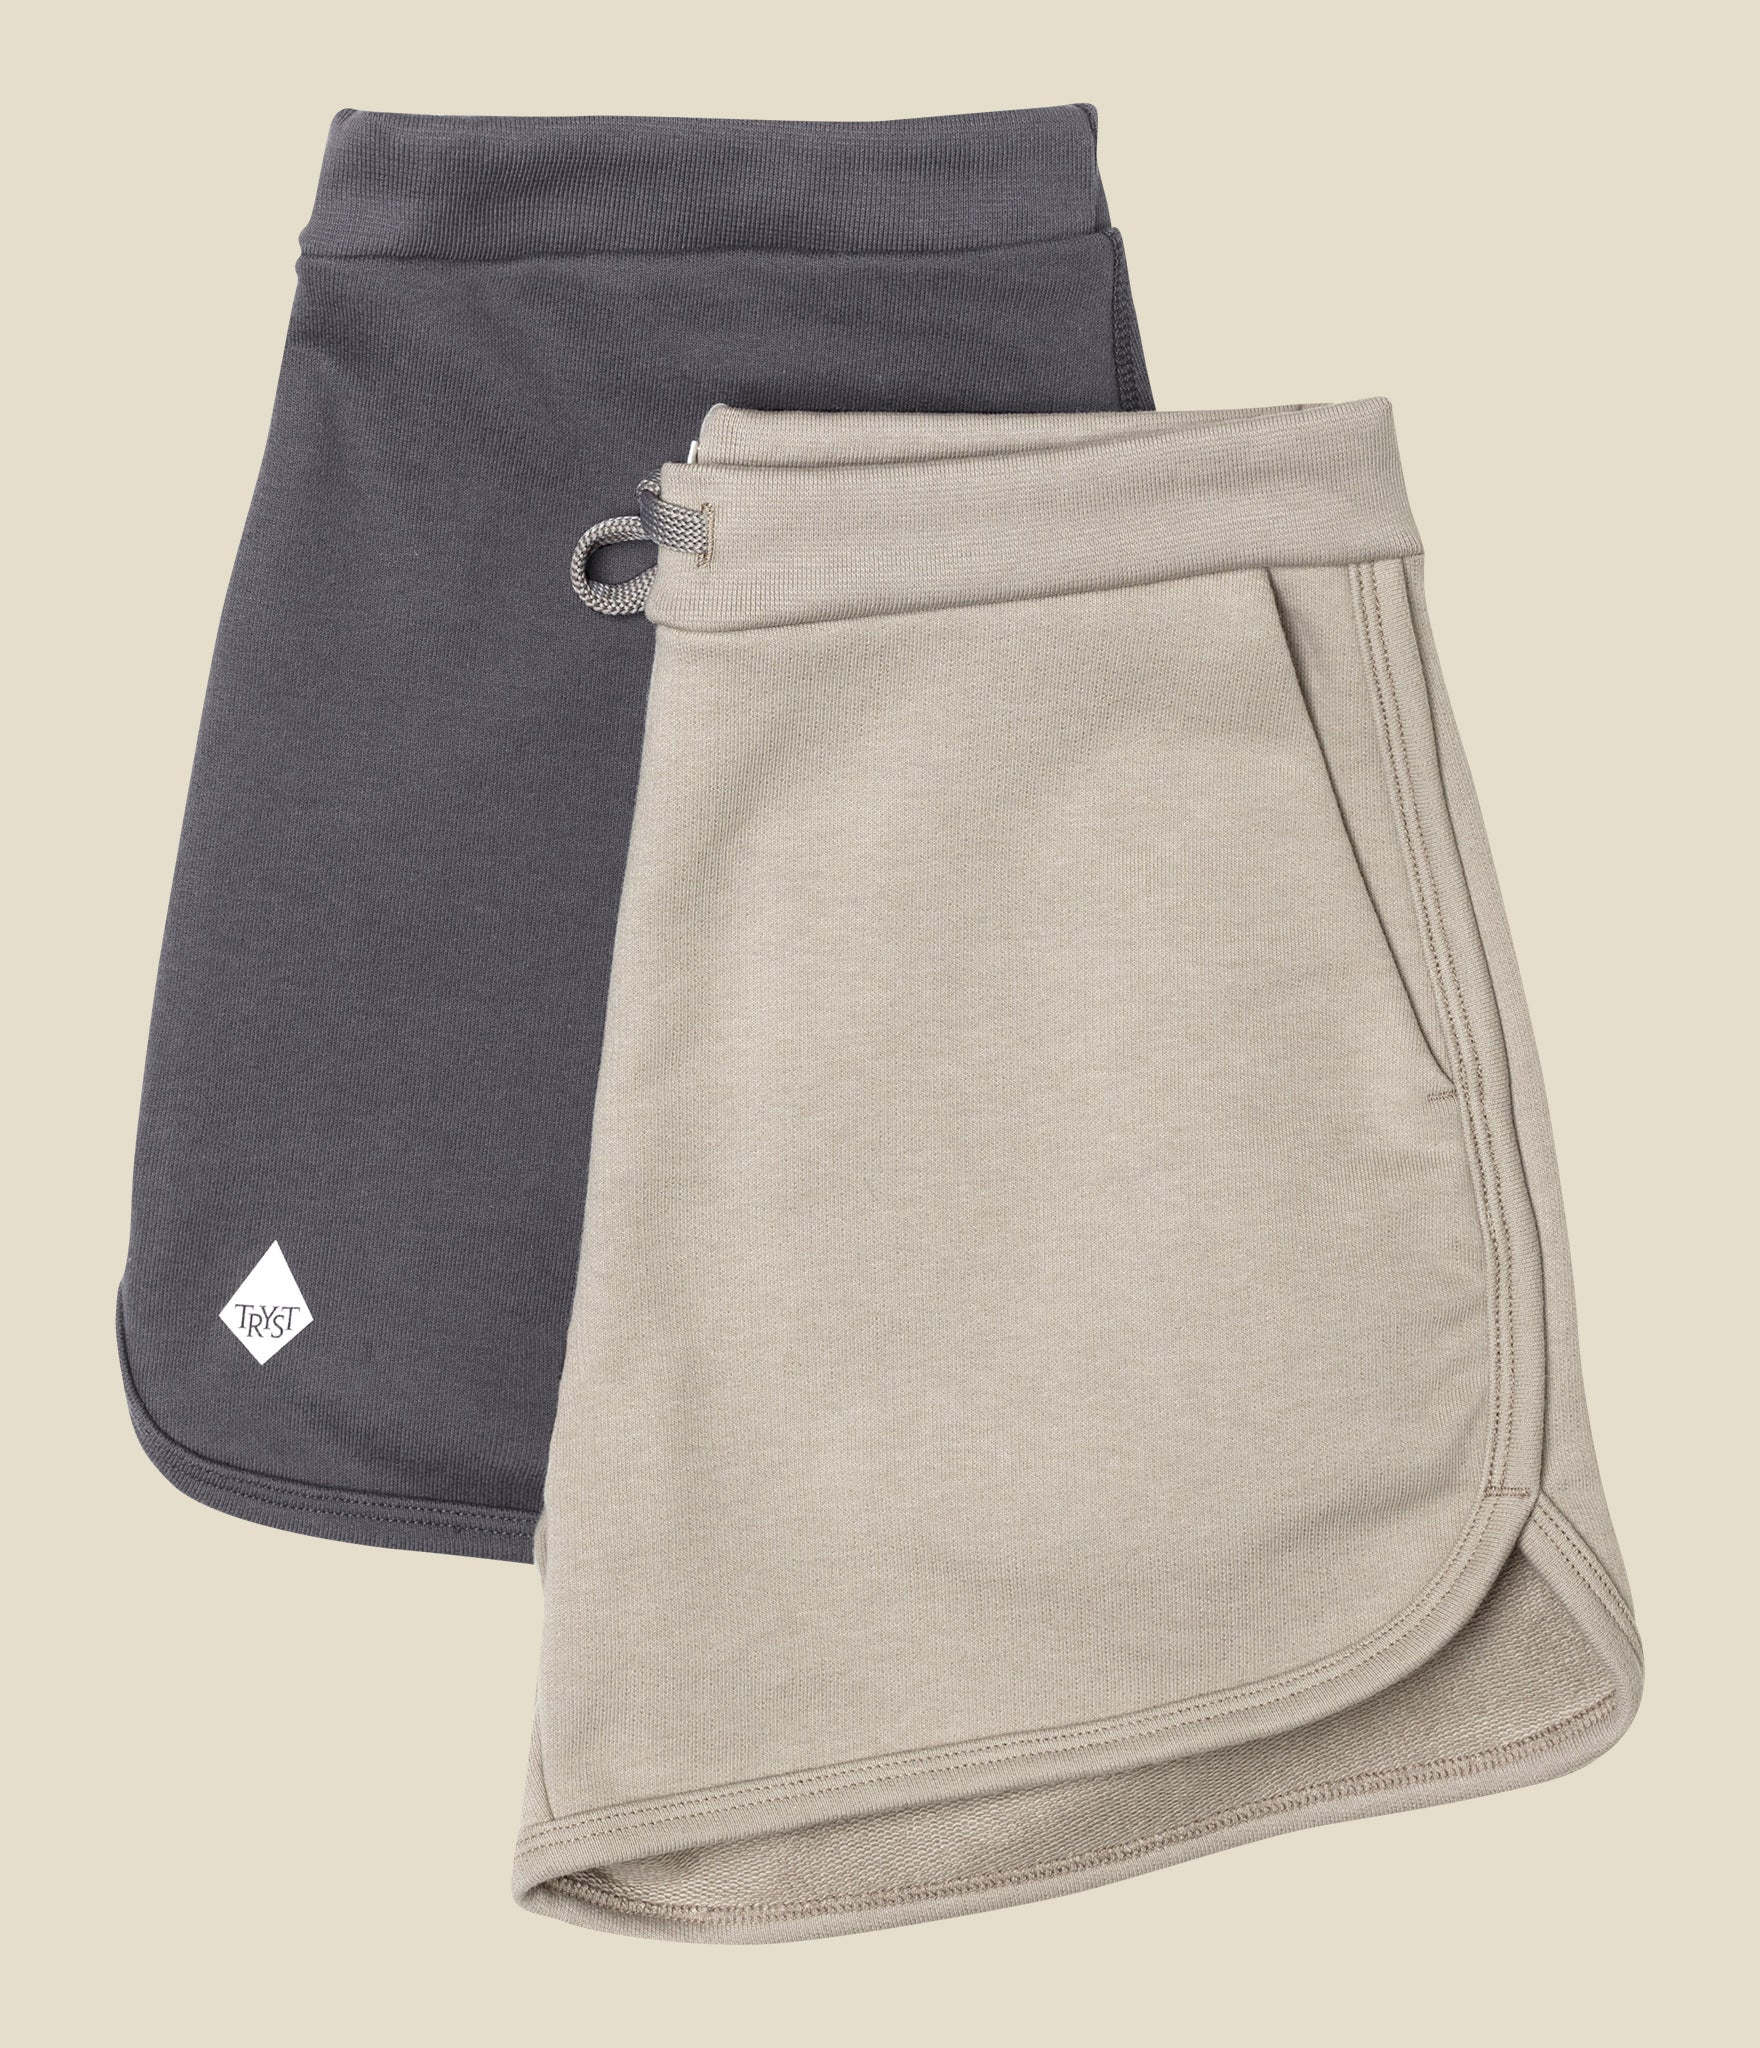 Halifax Shorts</br>Beige